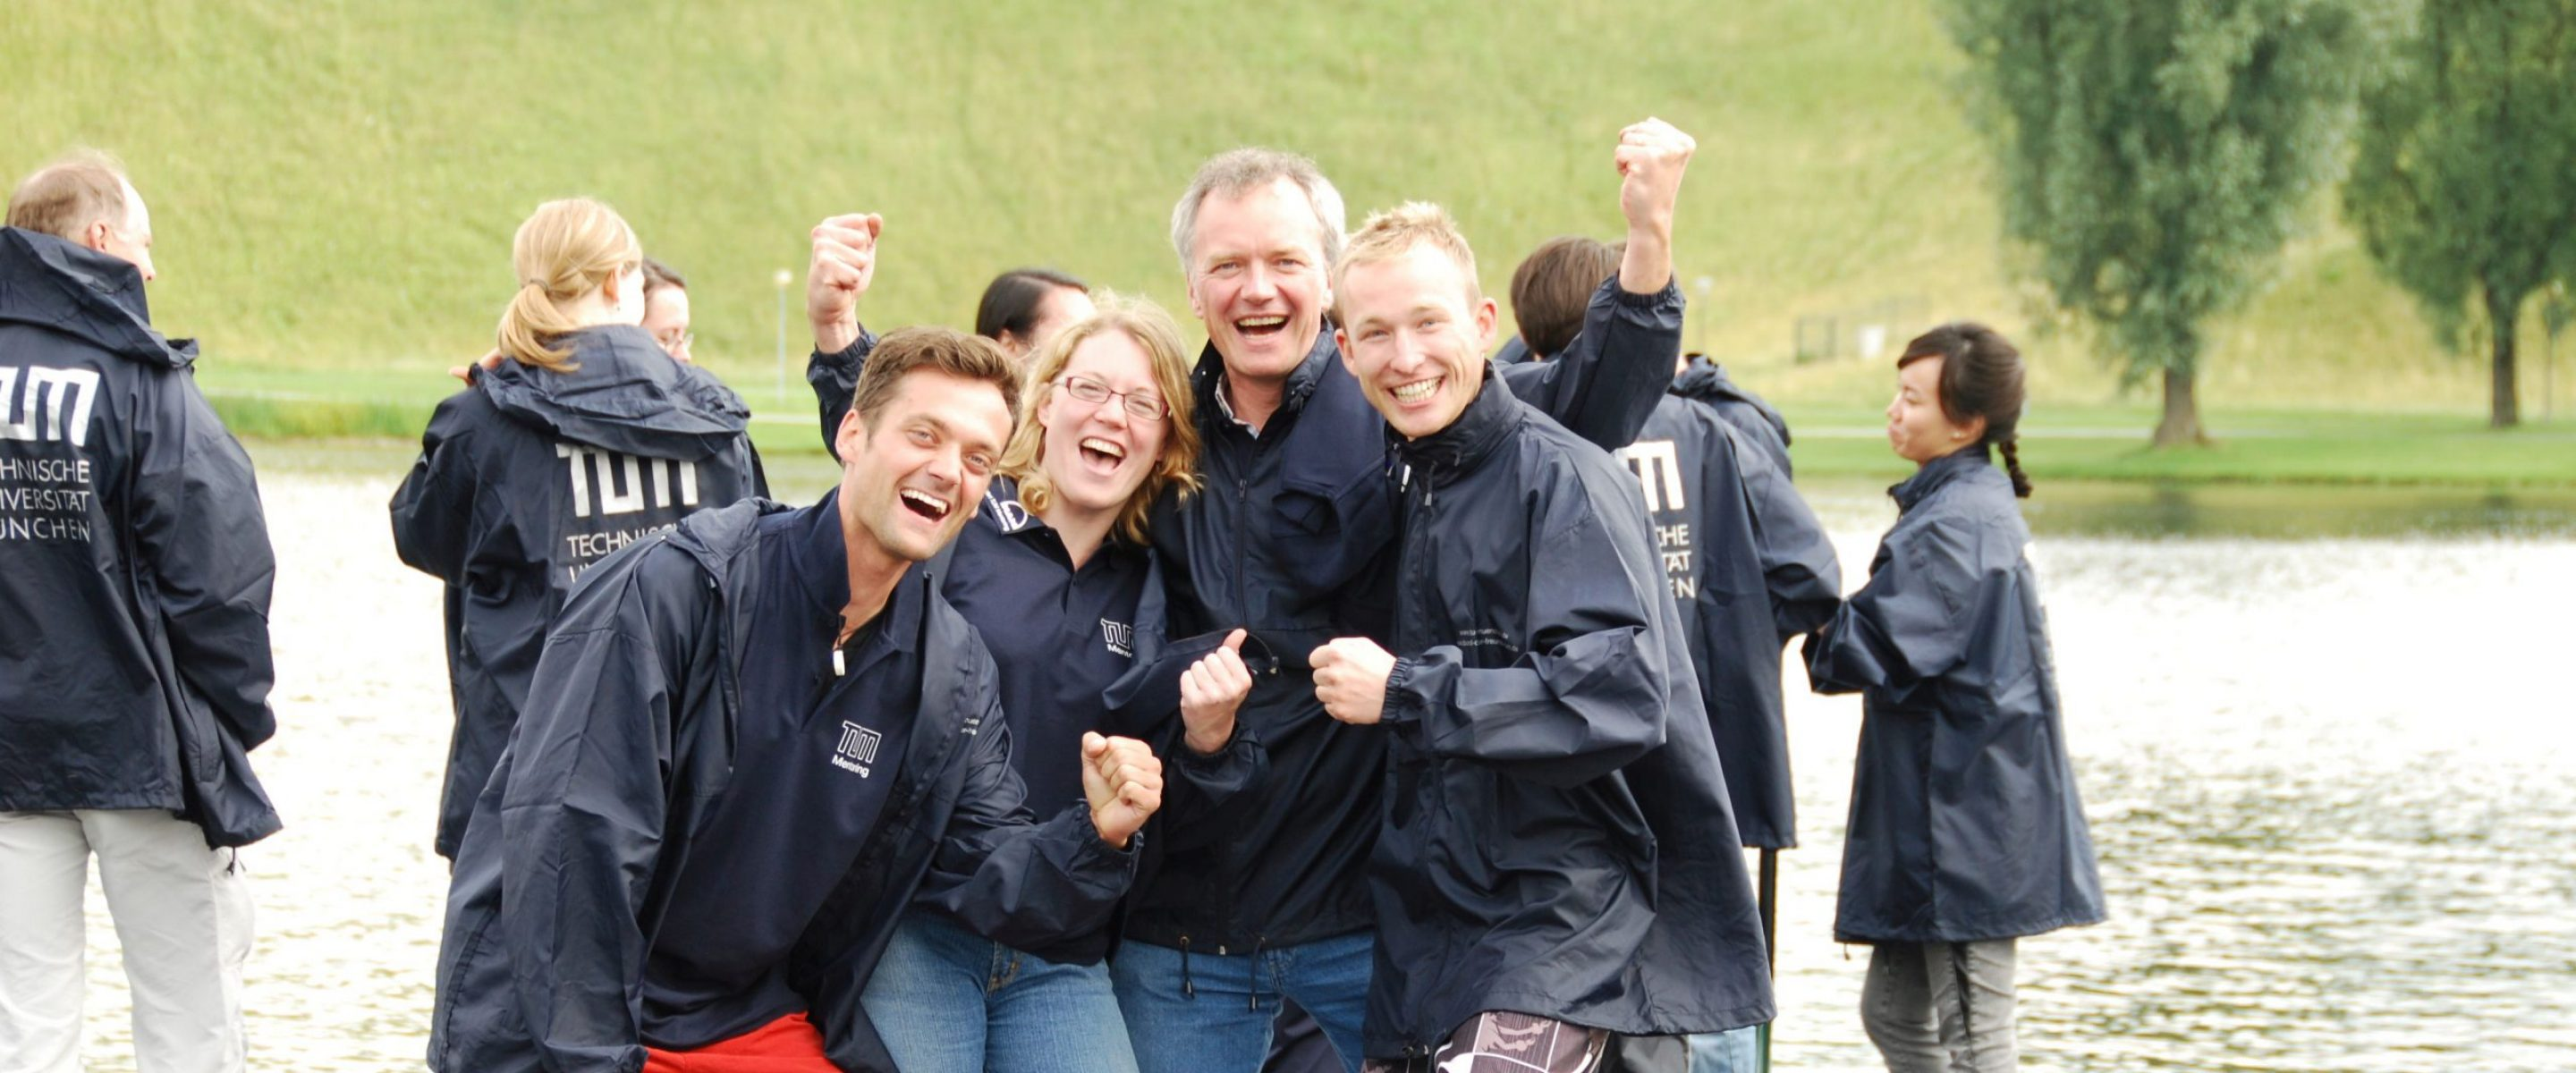 TUM Mentoring Team at the Dragon boat race